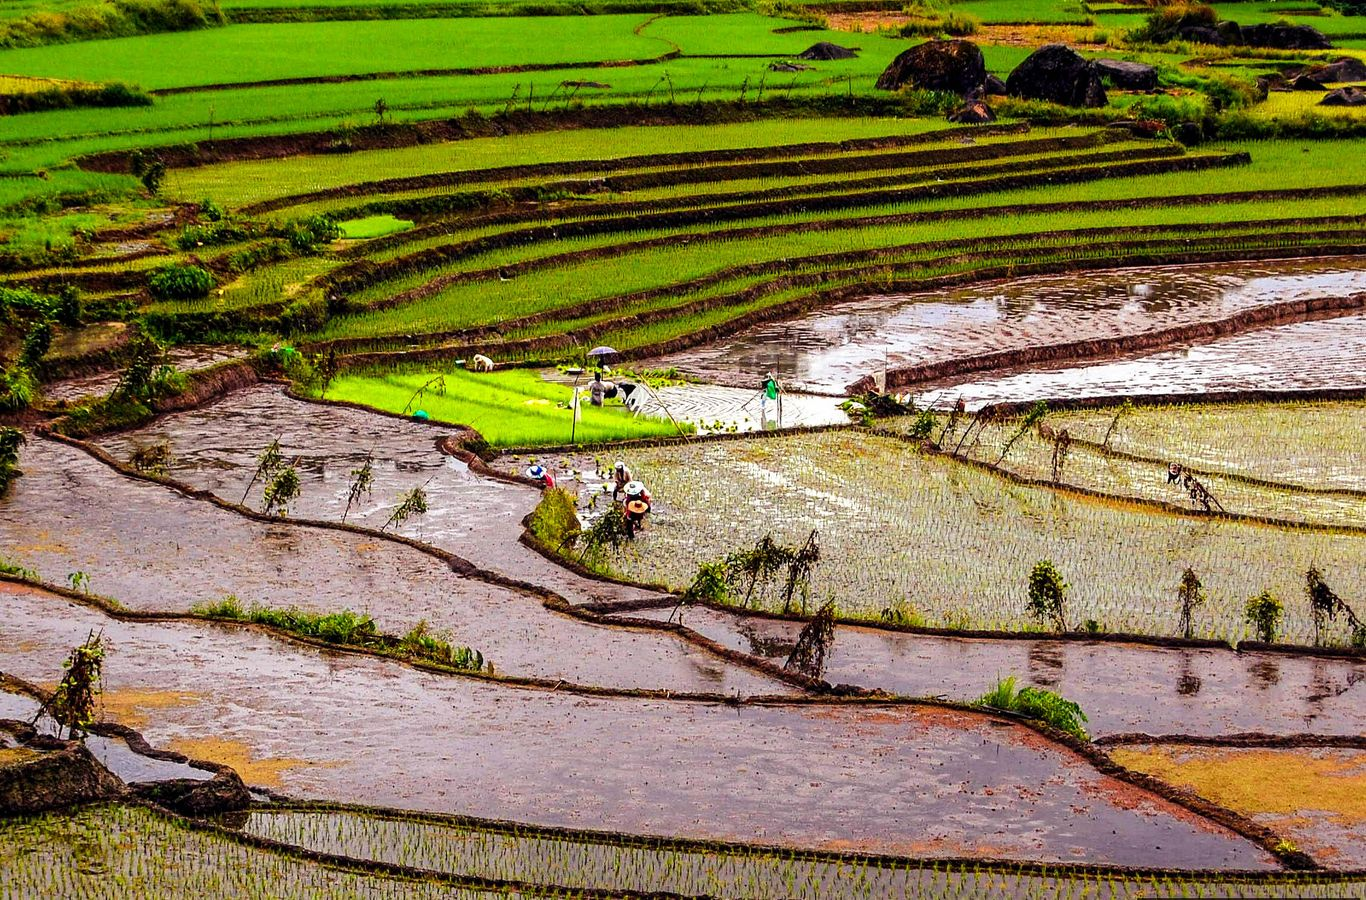 Farmers plant rice on wide terraced paddy fields